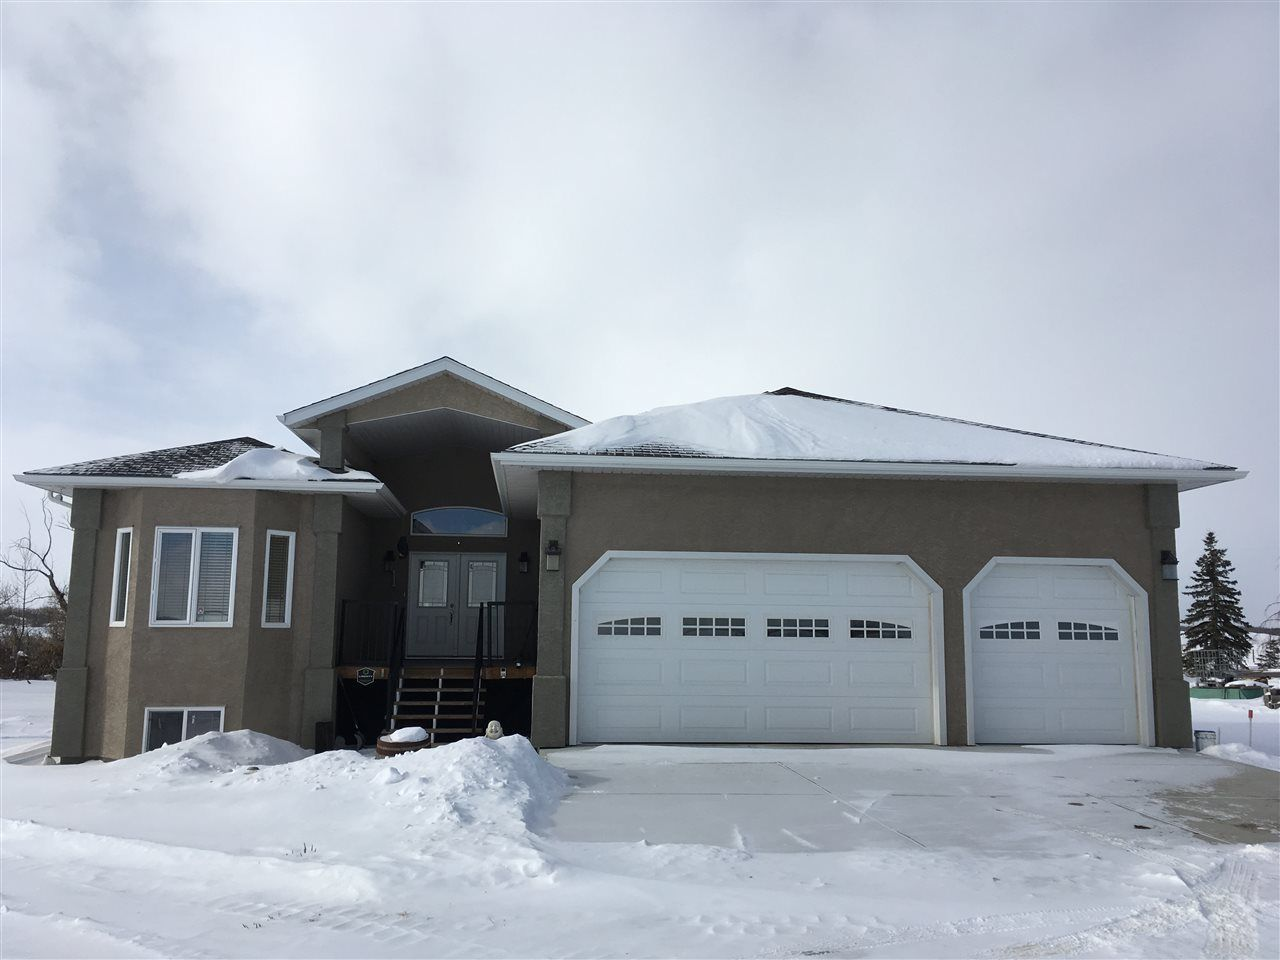 Main Photo: 260033 TWP Rd 460: Rural Wetaskiwin County House for sale : MLS®# E4132445